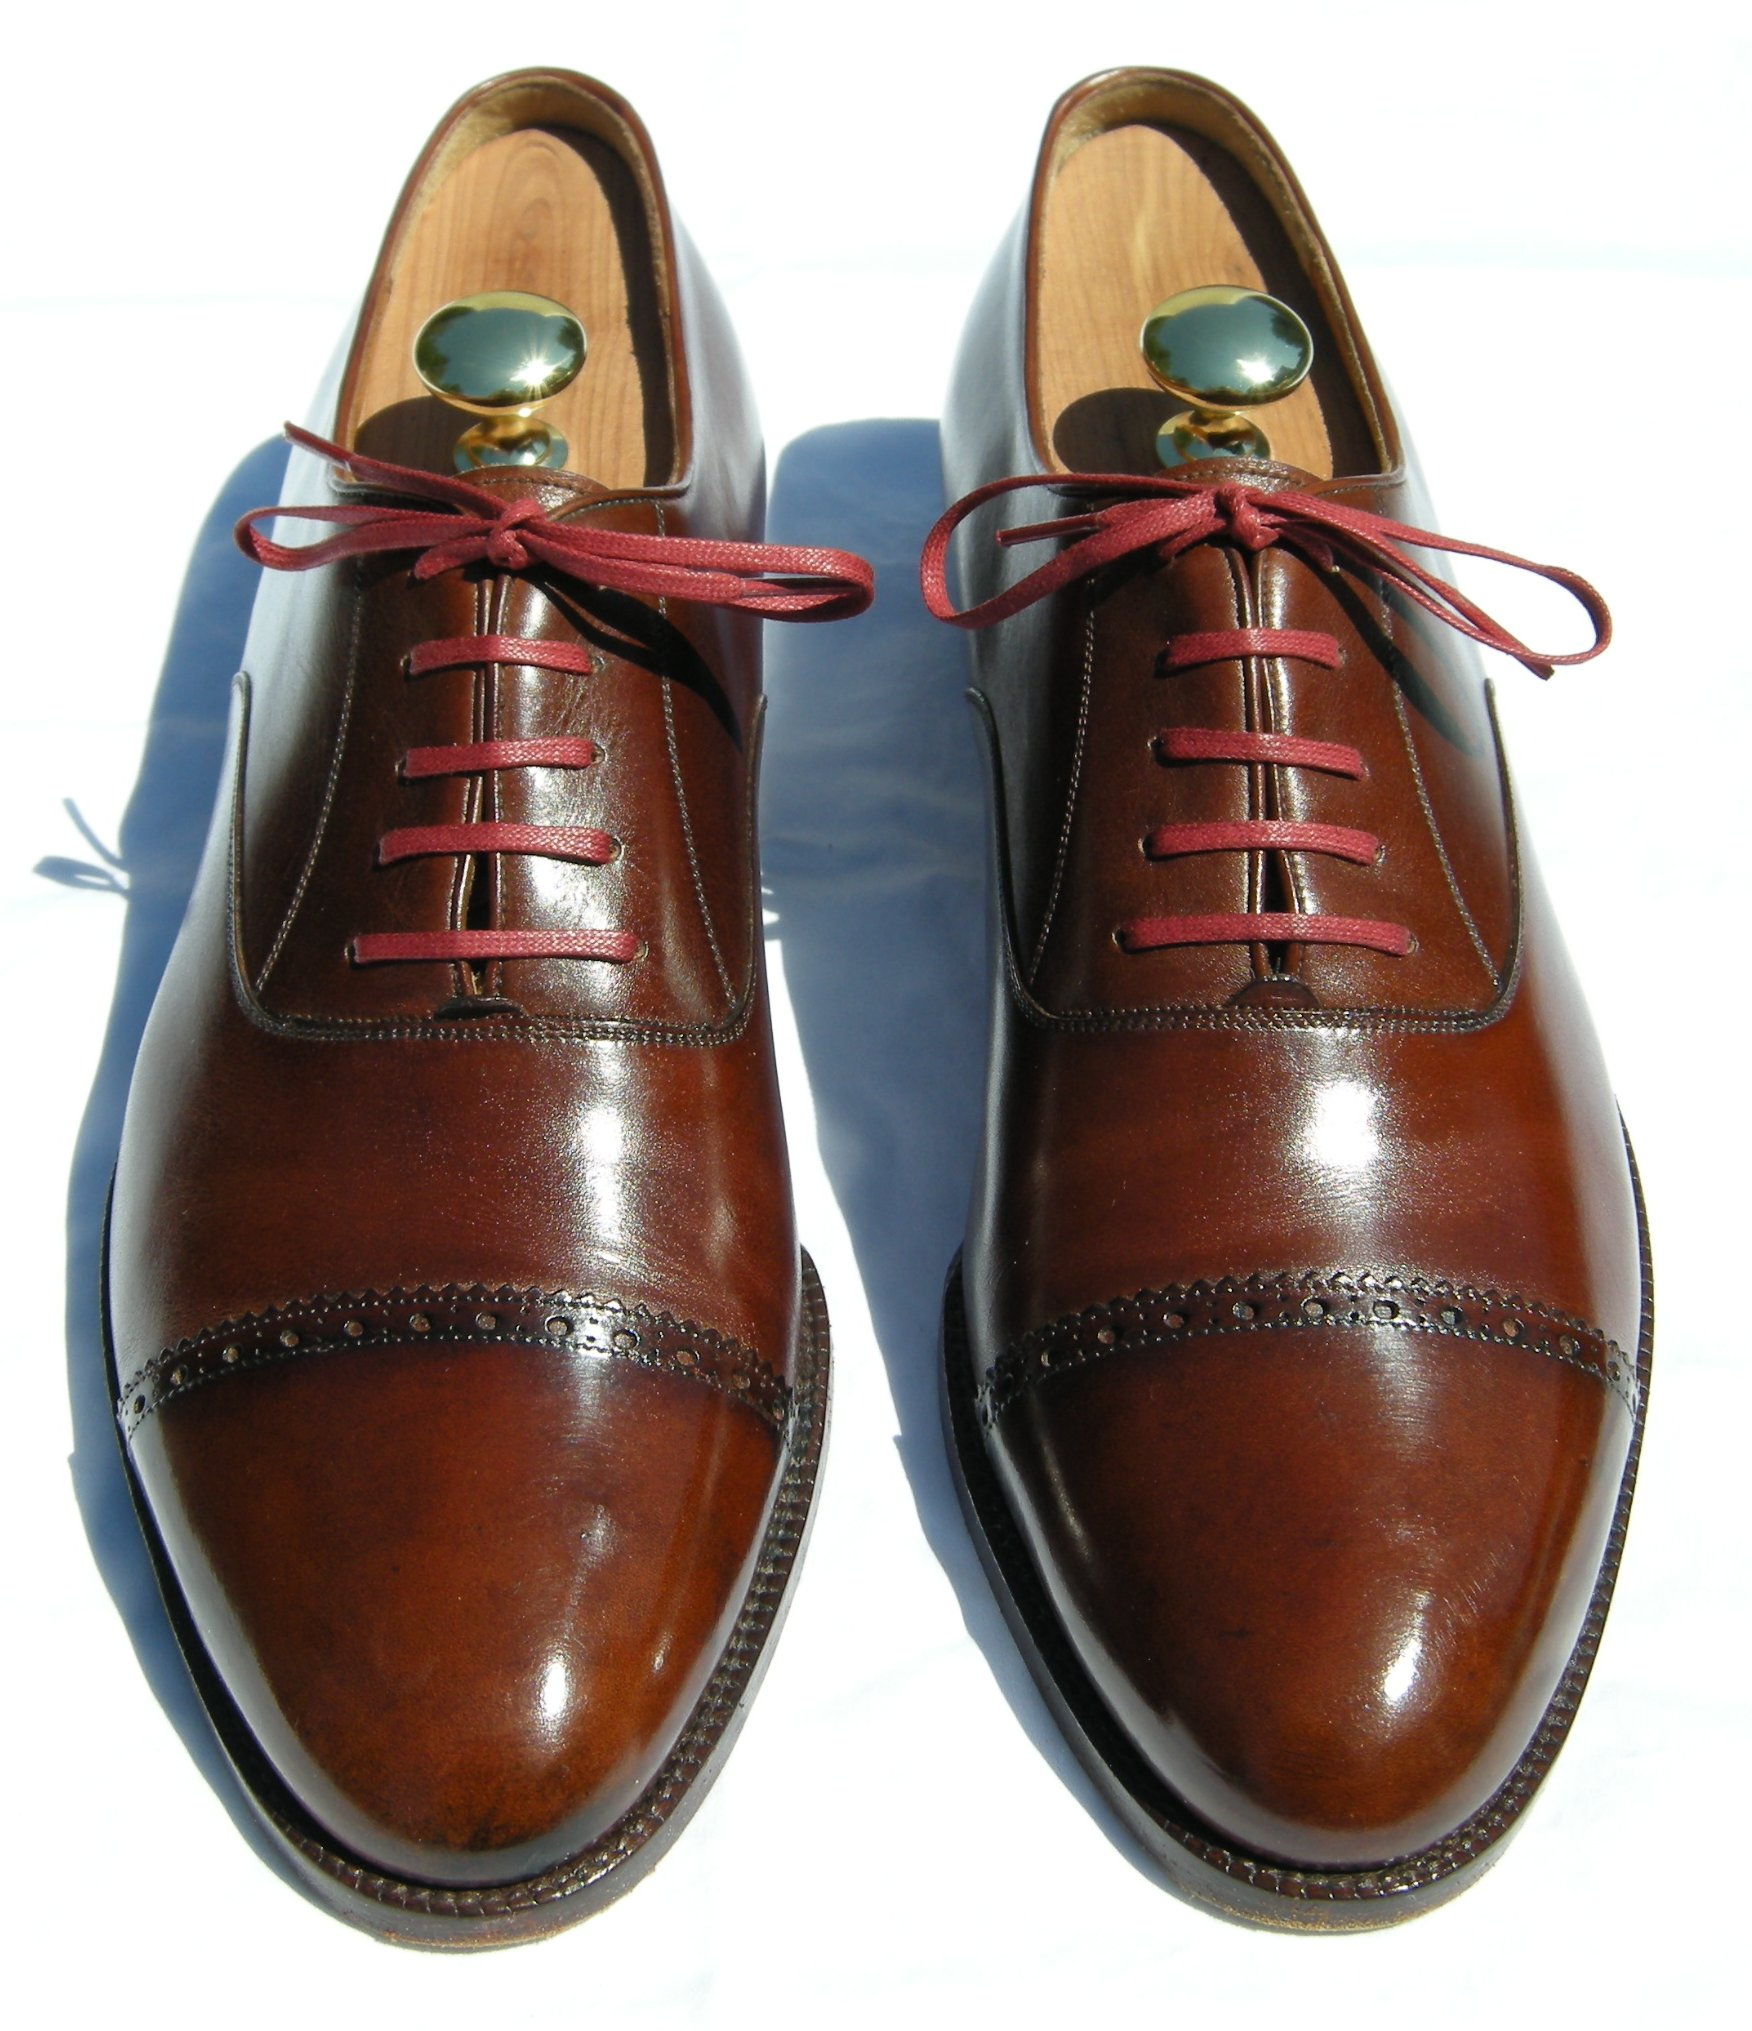 What's the opinion on colored shoe laces for dress shoes? | Styleforum